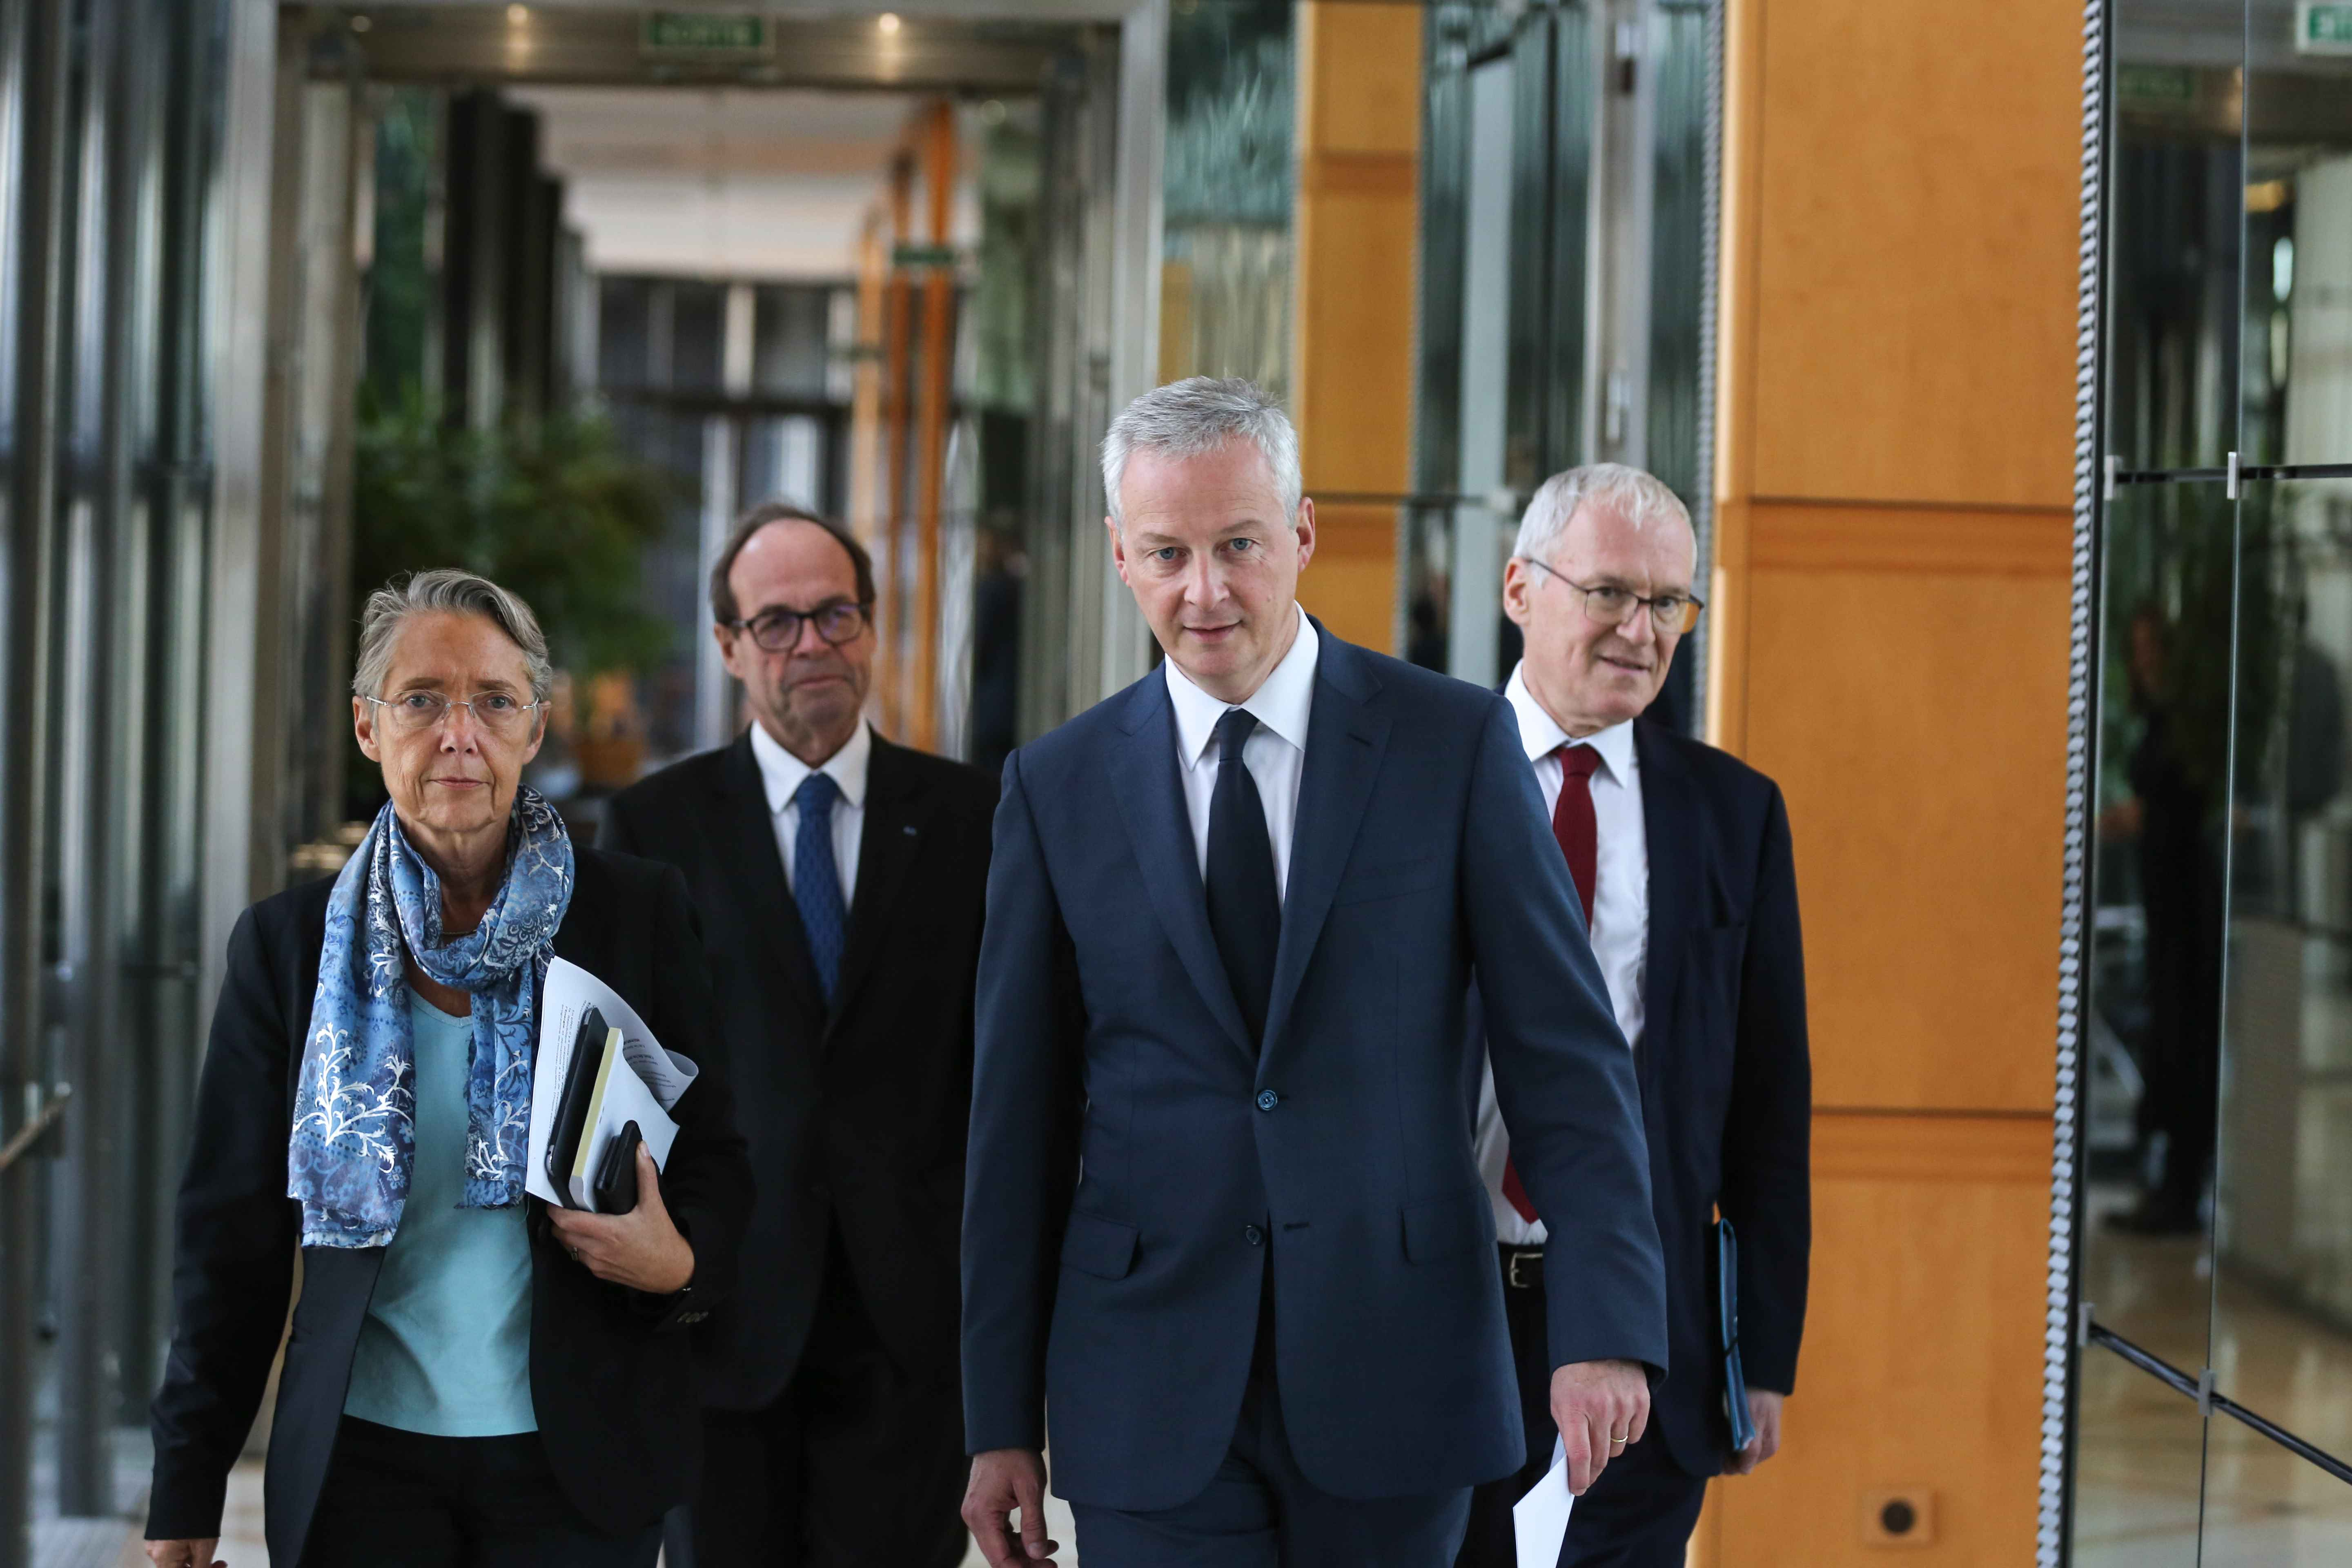 (From L to R) French Minister for the Ecological and Inclusive Transition Elisabeth Borne, report head Jean-Martin Folz, French Finance and Economy Minister Bruno Le Maire and French energy giant EDF's CEO Jean-Bernard Levy arrive at  a joint press confere